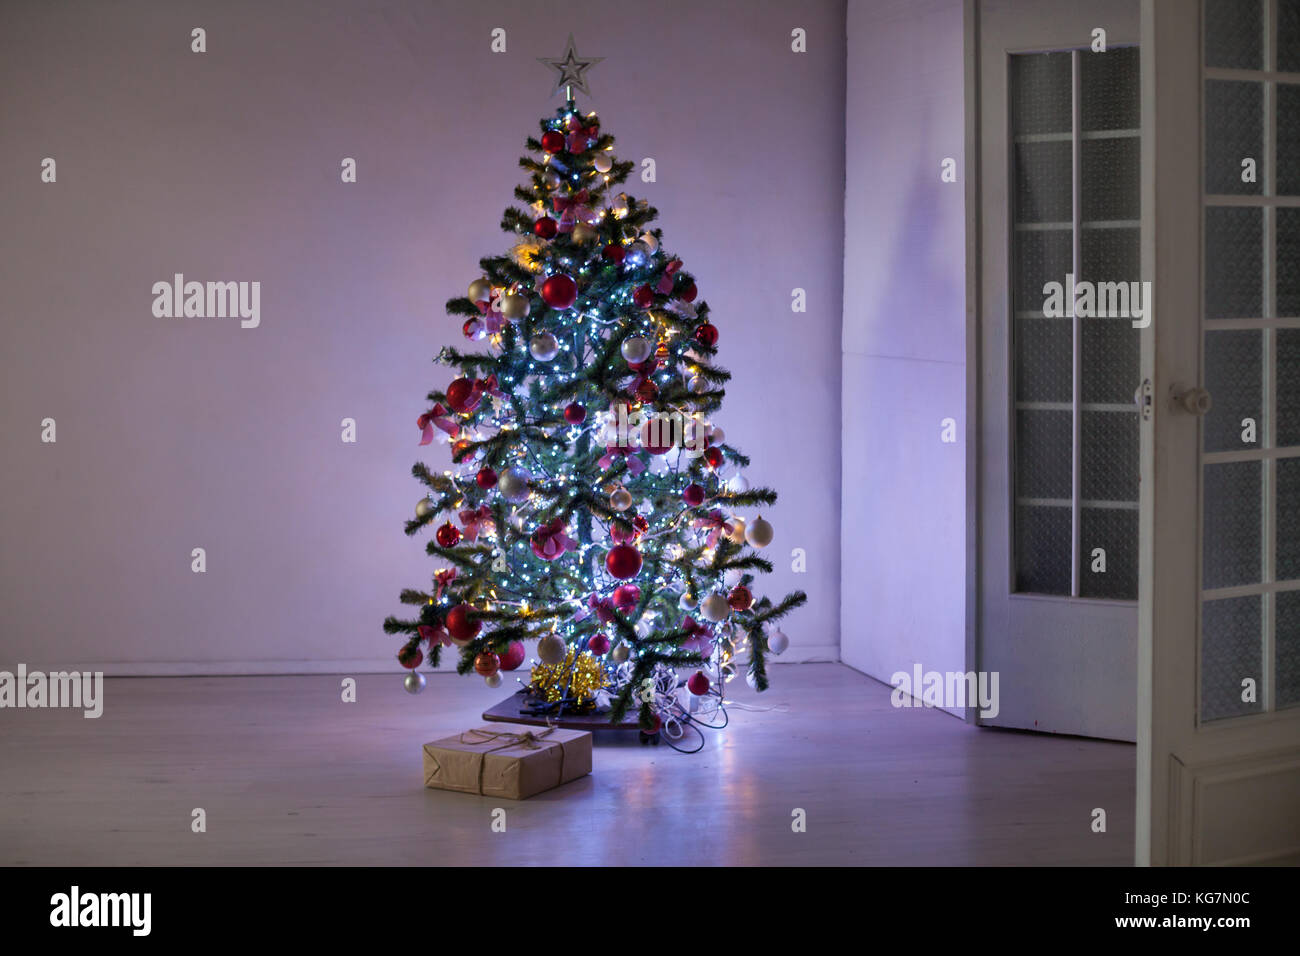 new year tree Christmas Decor gifts - Stock Image